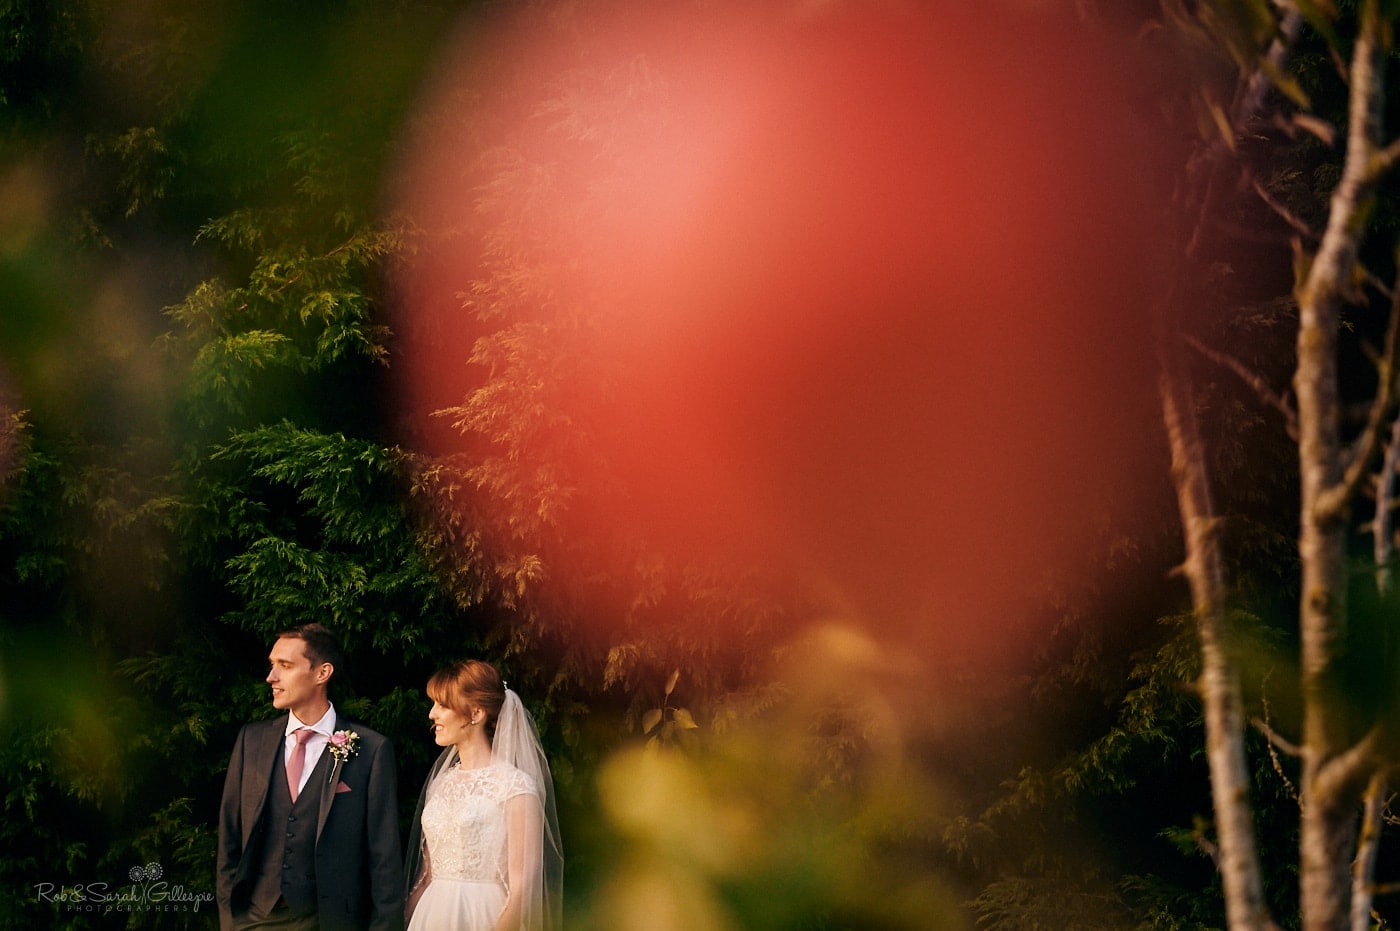 Bride and groom in gardens with red apple in foreground